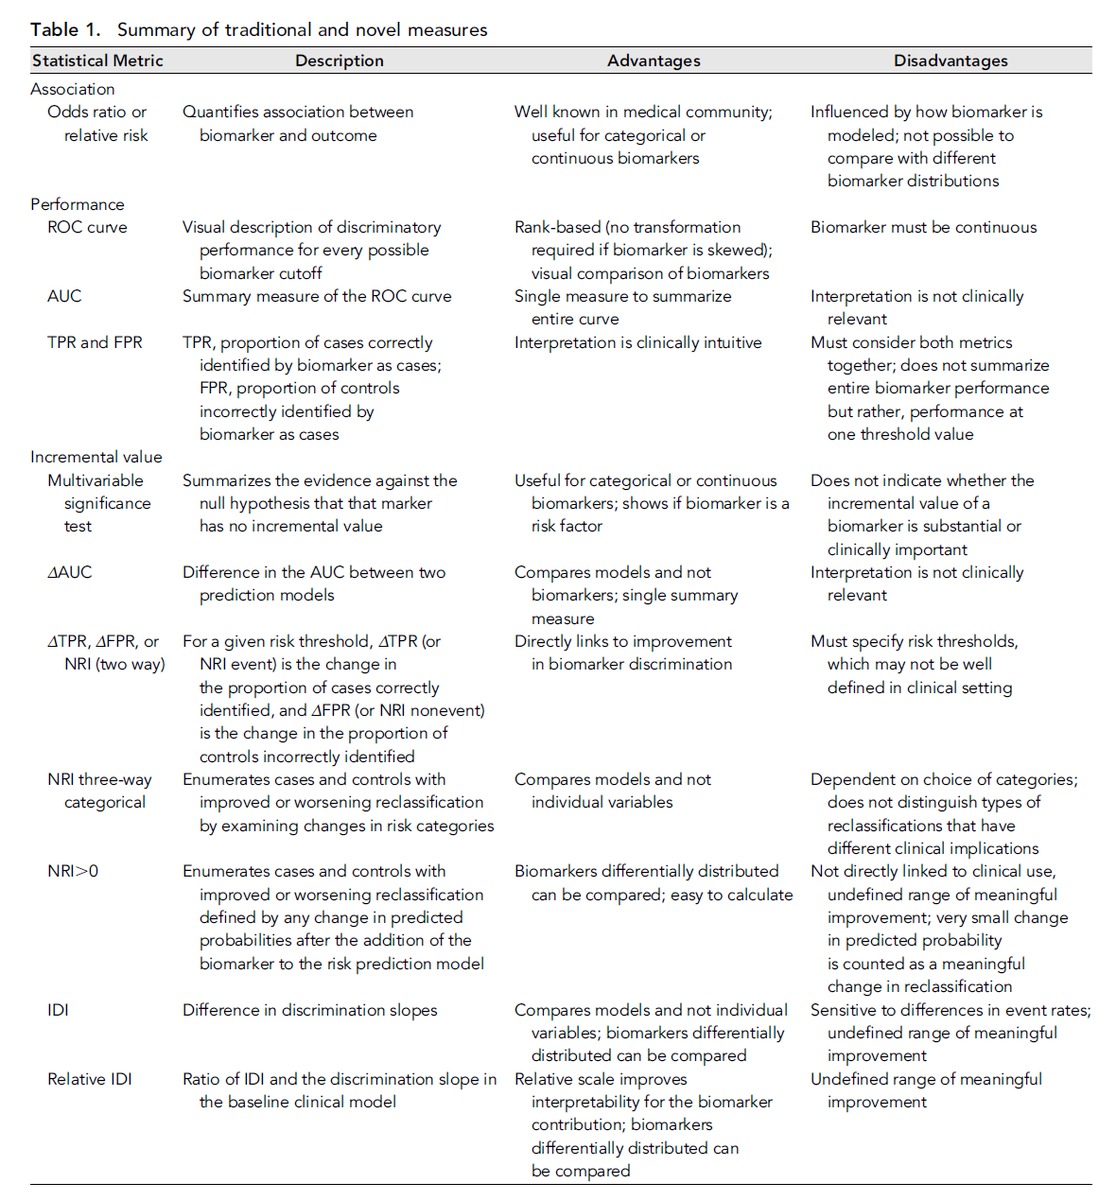 @LangoteAmit @nephJC Summary of traditional and novel measures (Parikh) http://t.co/mQbLc9wqlI  #NephJC http://t.co/tArZzZ9WTH